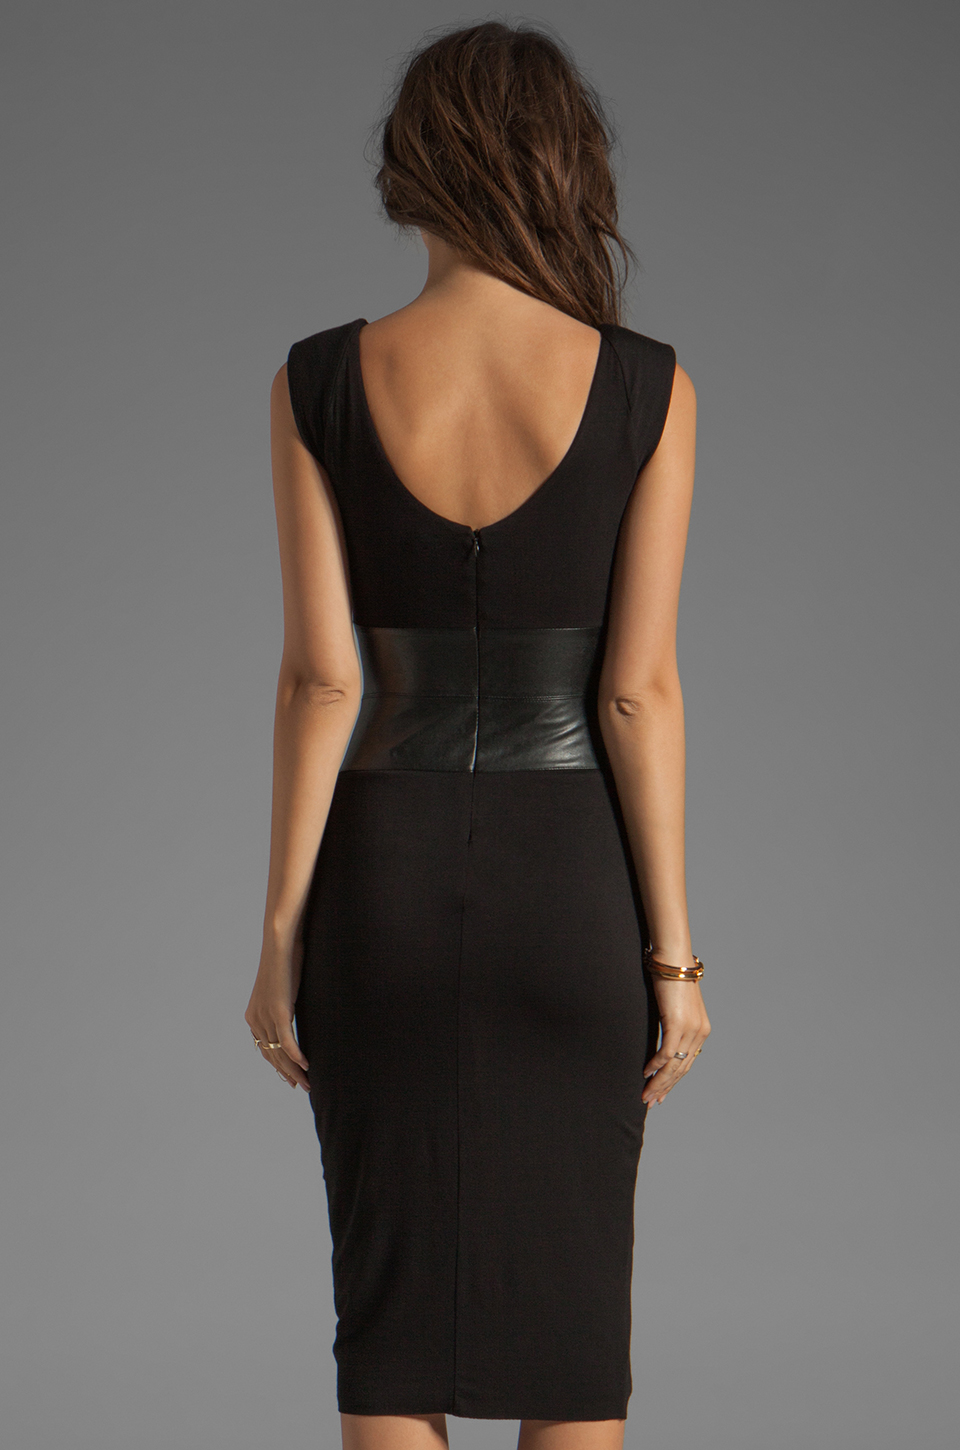 Bailey 44 Aerodynamic Dress in Black